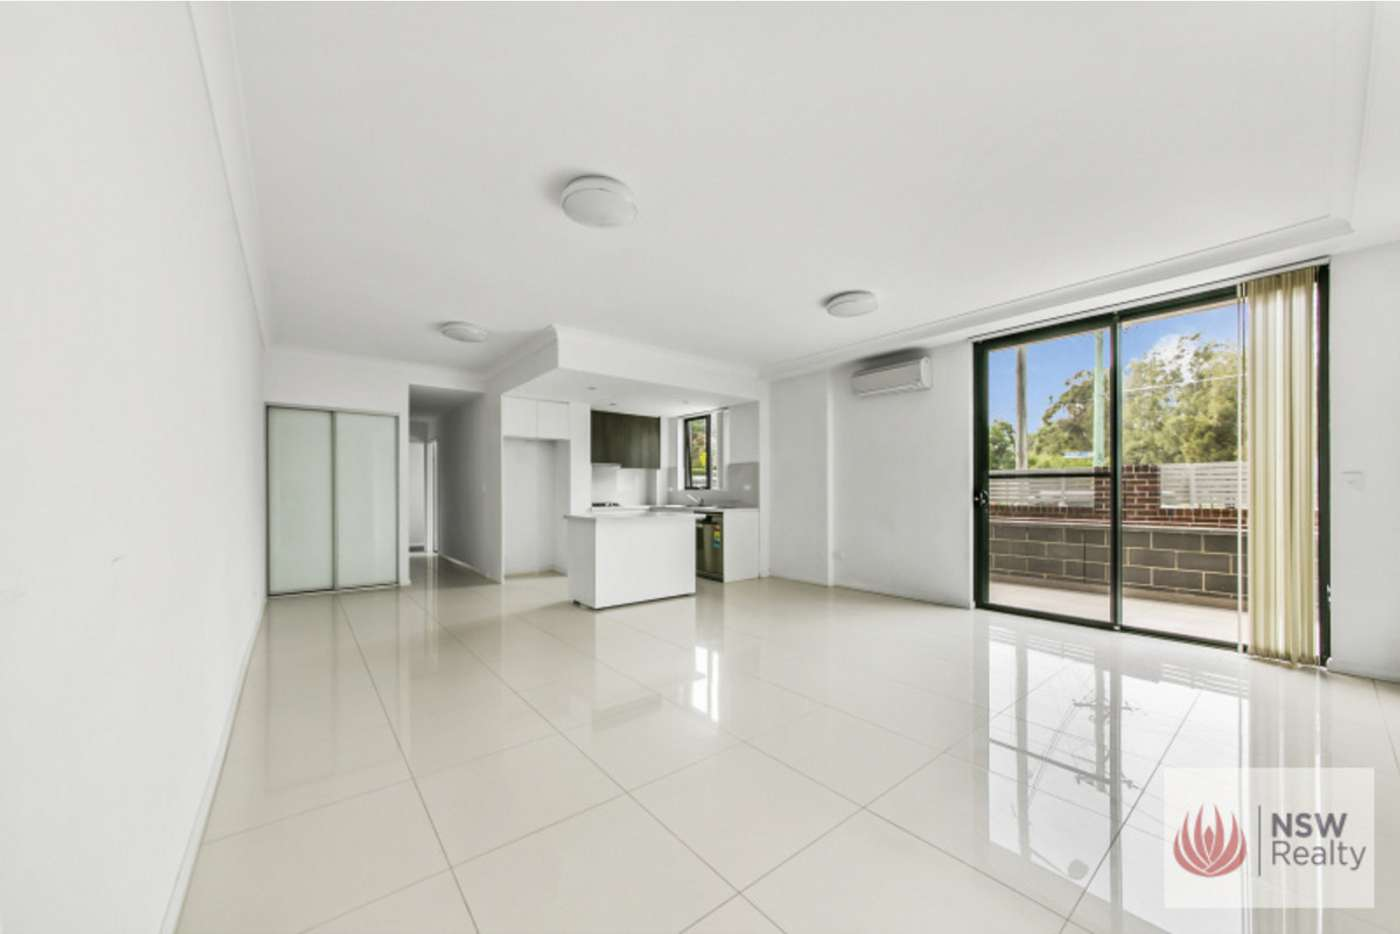 Main view of Homely apartment listing, 16/190-194 Burnett Street, Mays Hill NSW 2145